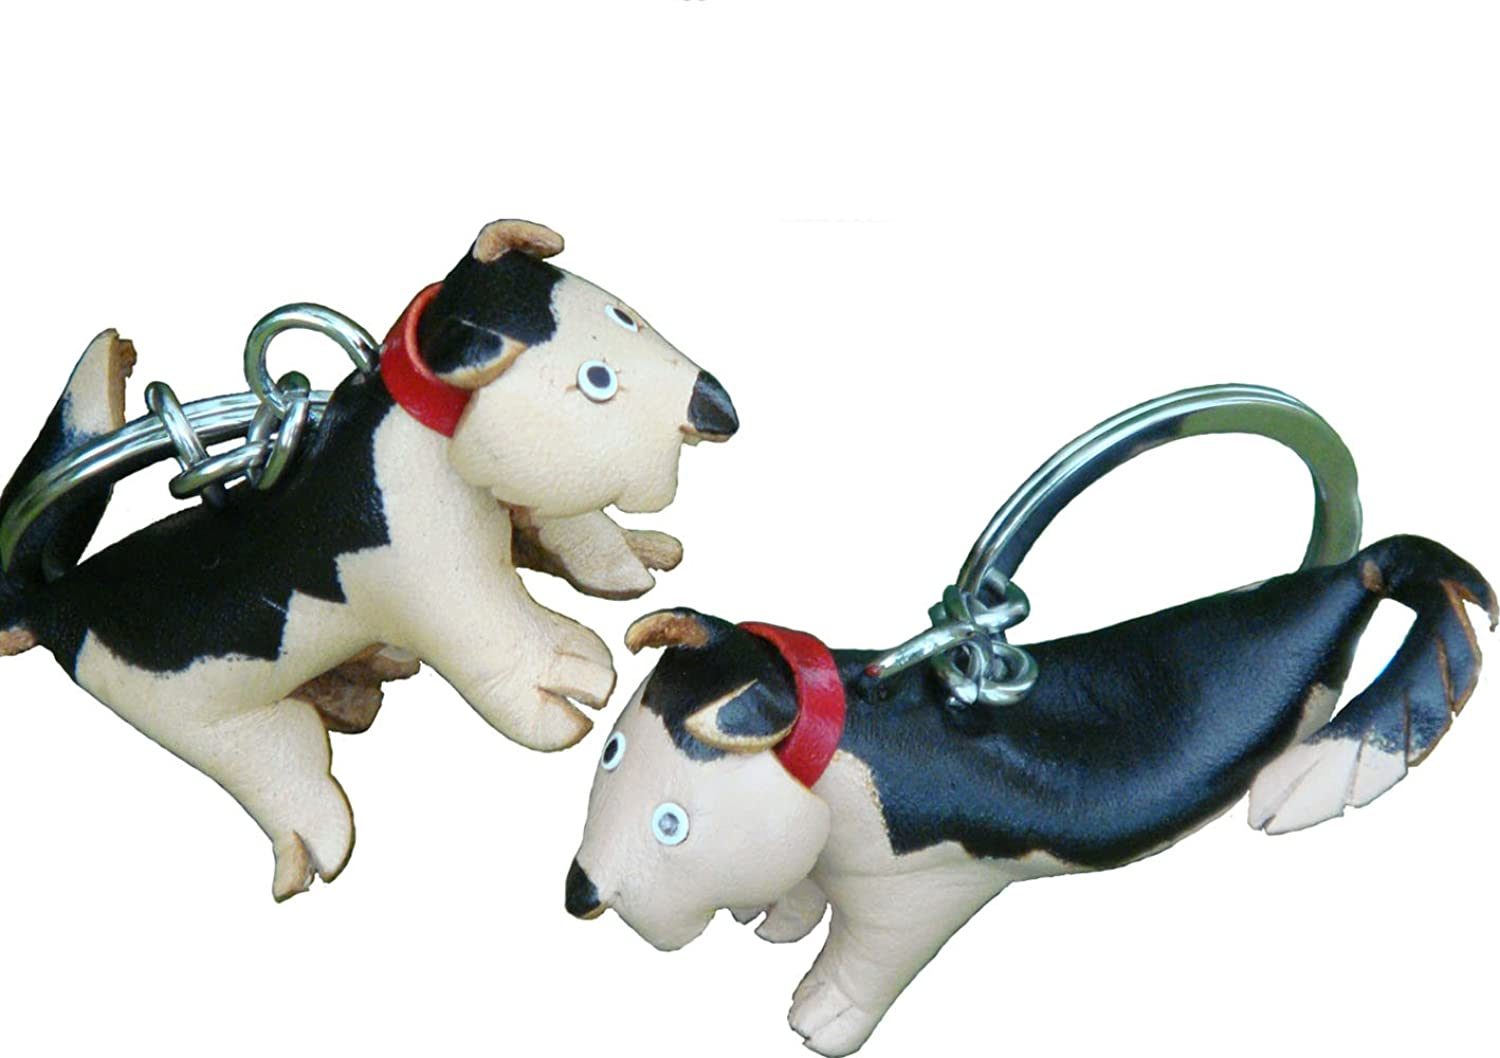 A Pair (2 Pieces) of Genuine Leather Keychain/bag-charm, black mix Chihuahua dog